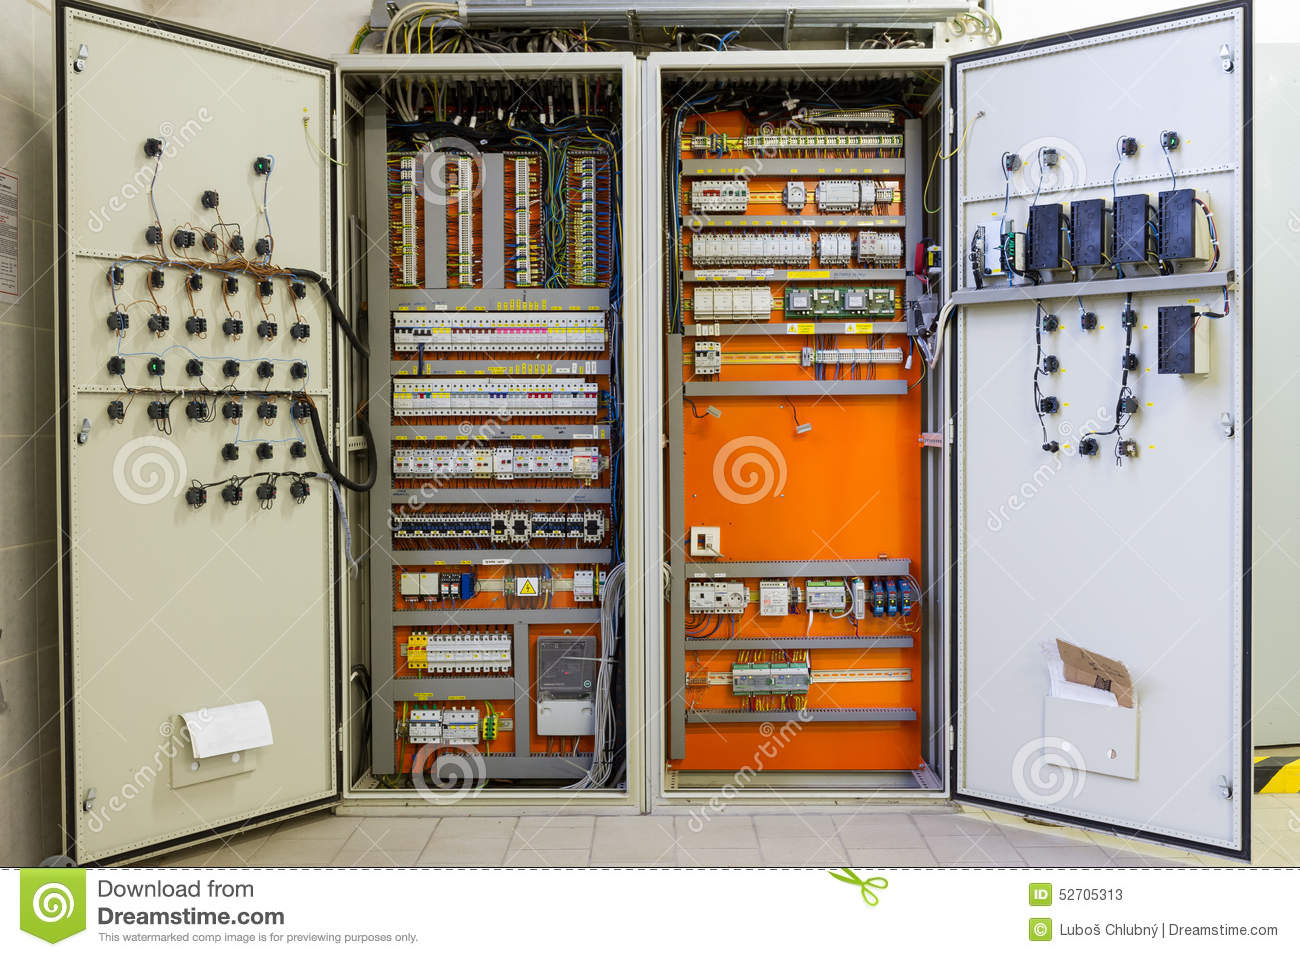 Industrial Fuse Box Wiring Diagram Schemes Buss Electricity Distribution With Wires Circuit Breakers And Fu Rh Dreamstime Com Grainger Guide